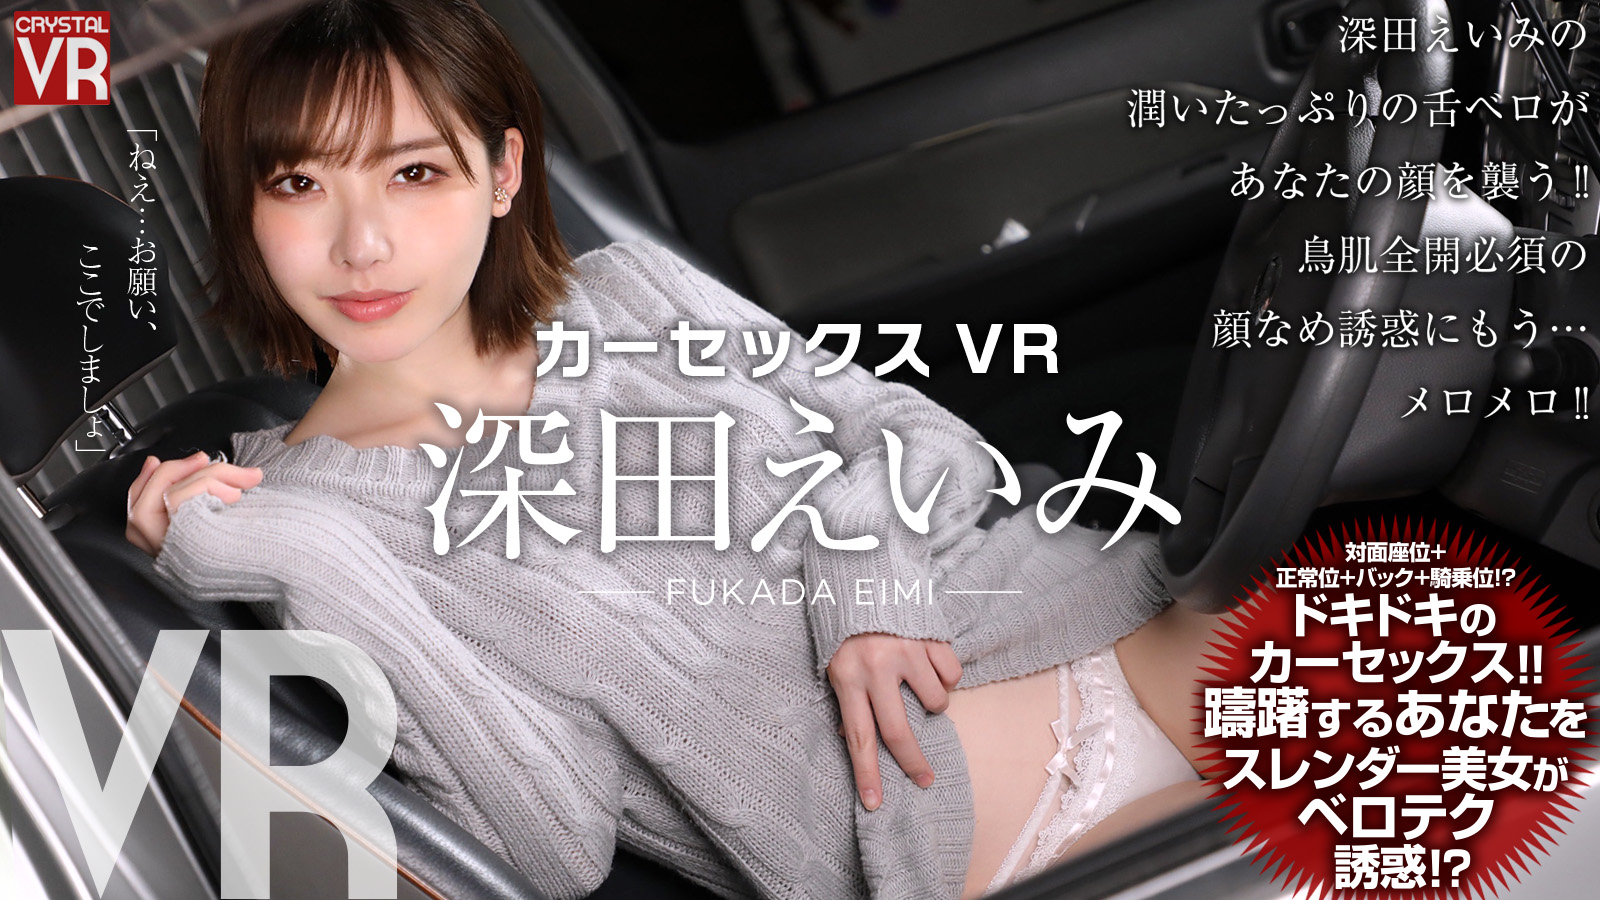 Adult VR Videos:[Standard Resolution Version] The car sex in VR! A slender beauty will tempt you with her tongue! Featuring Eimi Fukada.